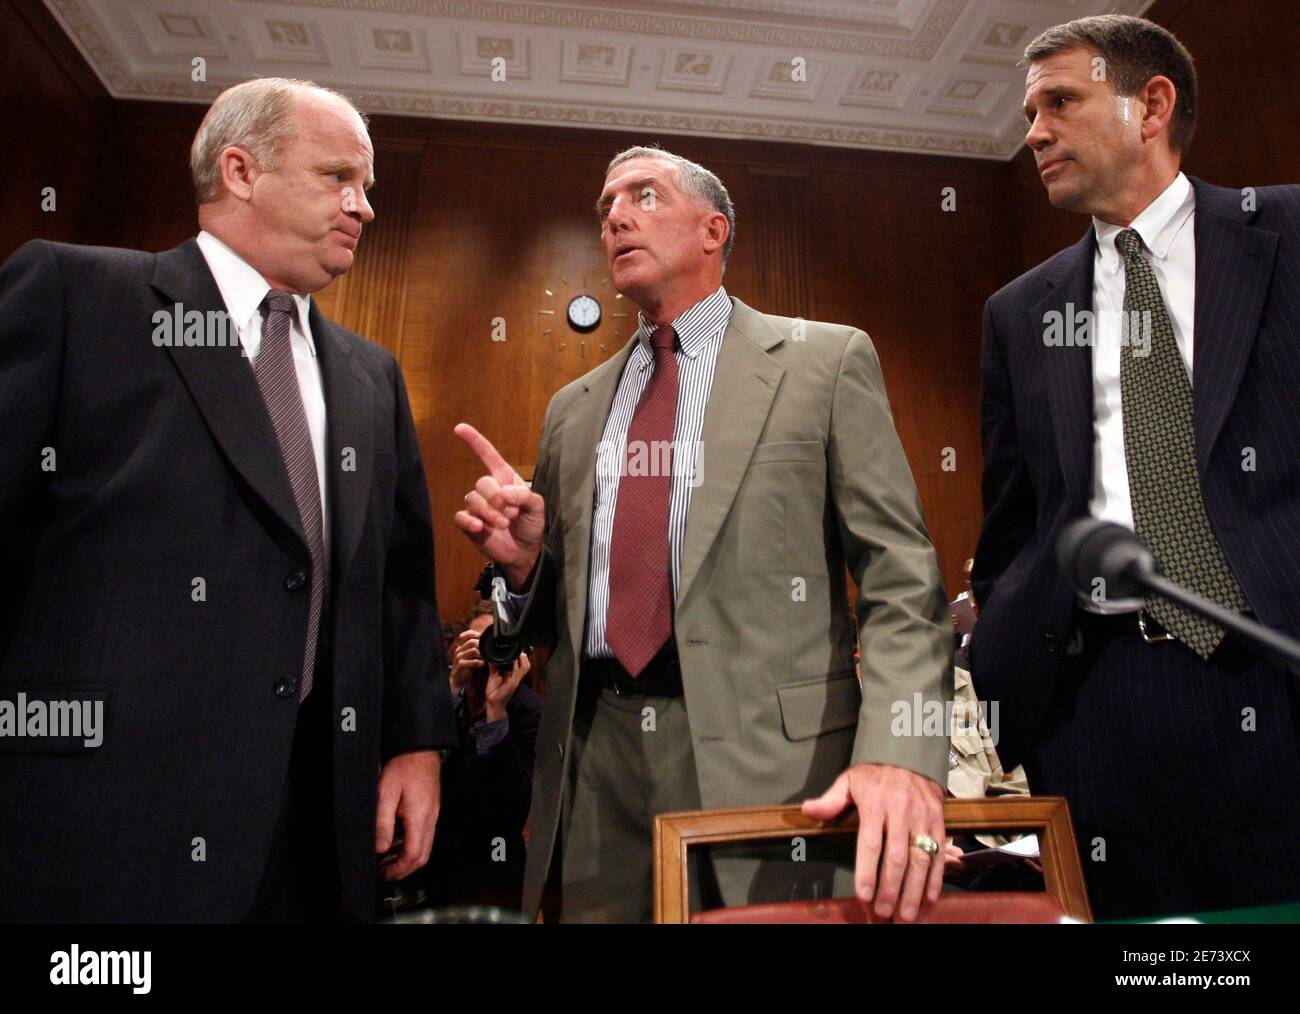 Retired U.S. Army Major Gen. Paul Eaton (c) makes a point to retired U.S. Marine Corps Col. Thomas Hammes (L) and retired U.S. Army Gen. John Batiste before testifying at the Democratic Policy Committee's oversight hearing on Capitol Hill in Washington to discuss the planning and conduct of the war in Iraq September 25, 2006. REUTERS/Kevin Lamarque  (UNITED STATES) Foto de stock